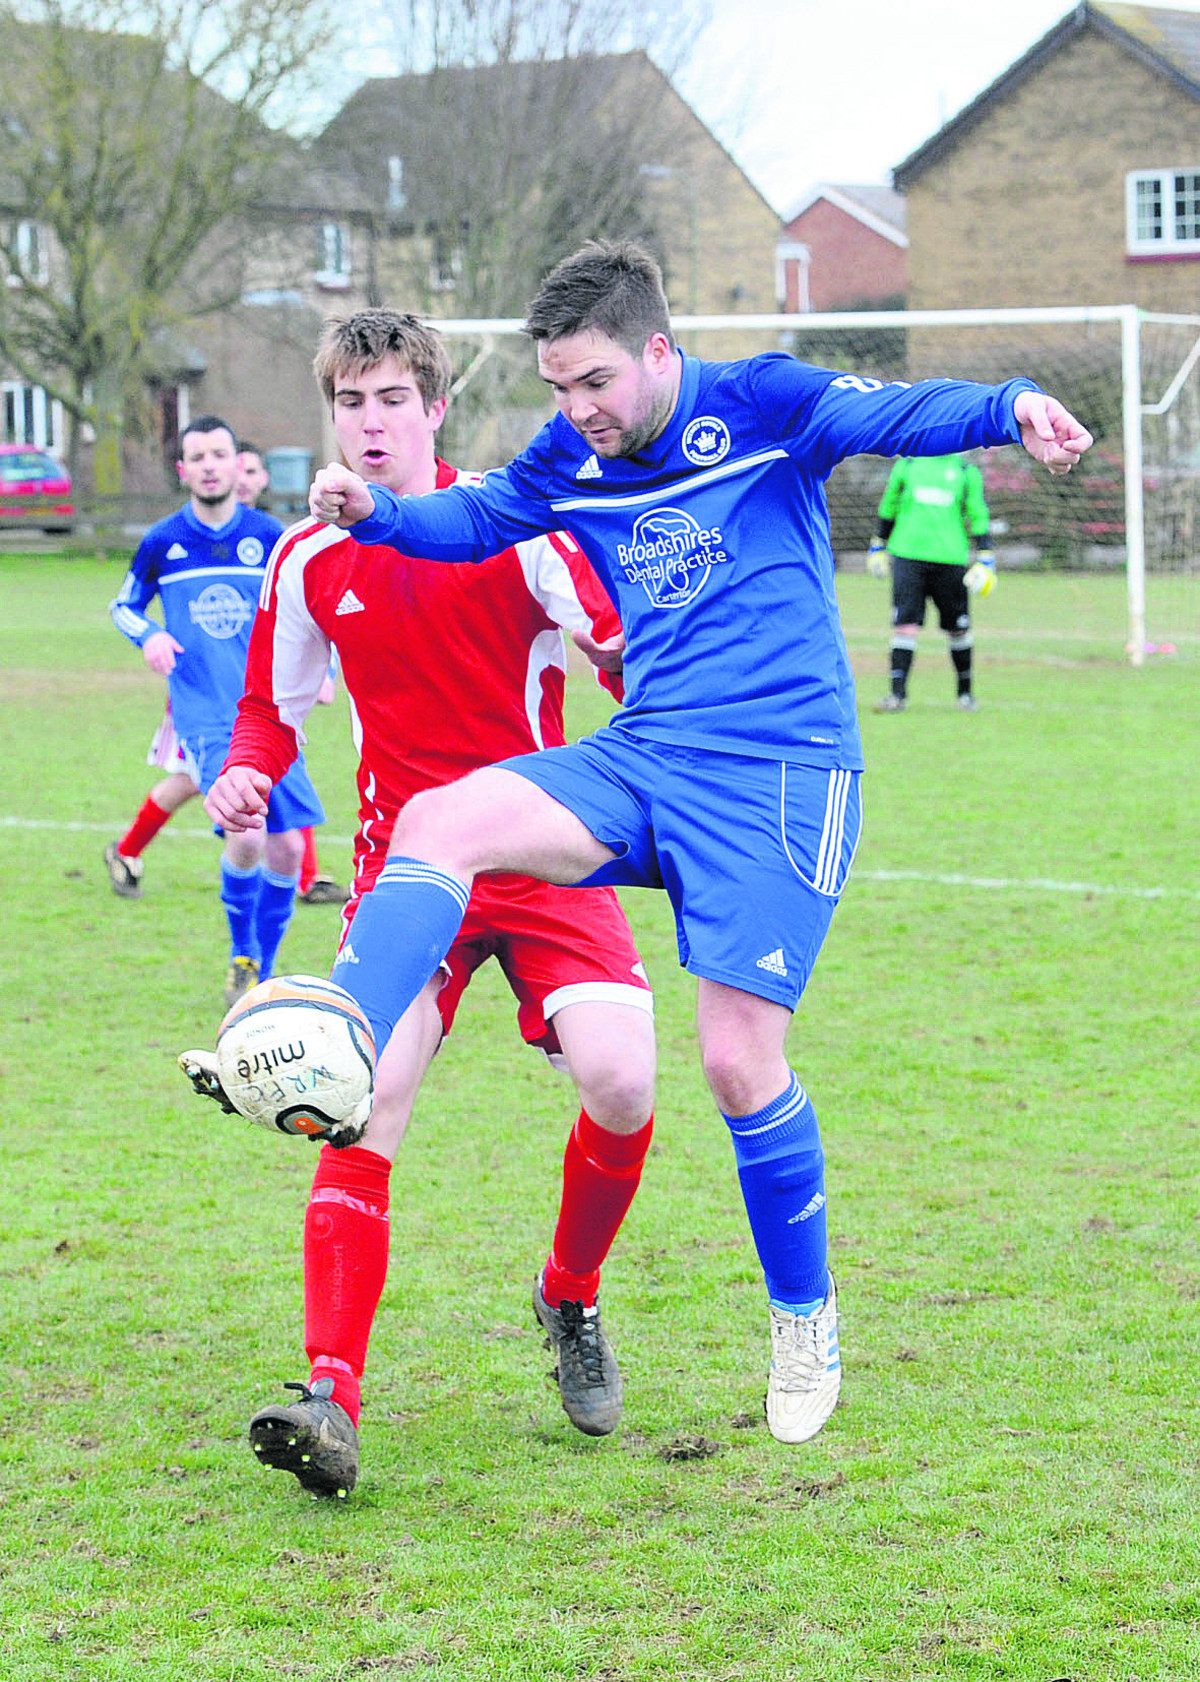 Jamie Goodwin scored a hat-trick as Division 4 champions Tower Hill thrashed Eynsham SSC Res 14-3